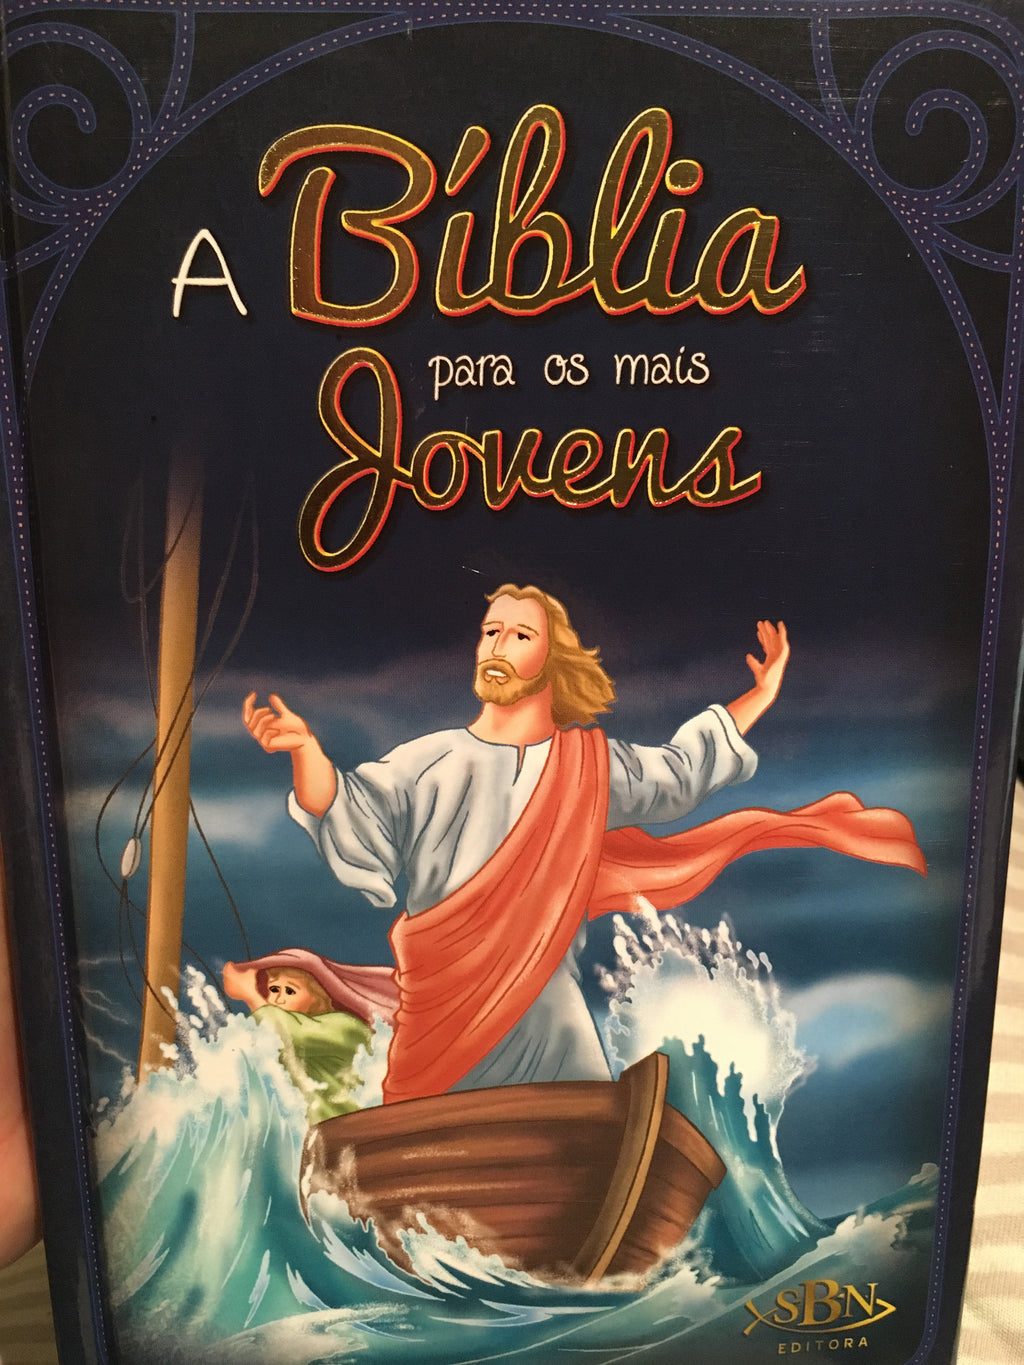 Biblia para os mais jovens / The bible for the young